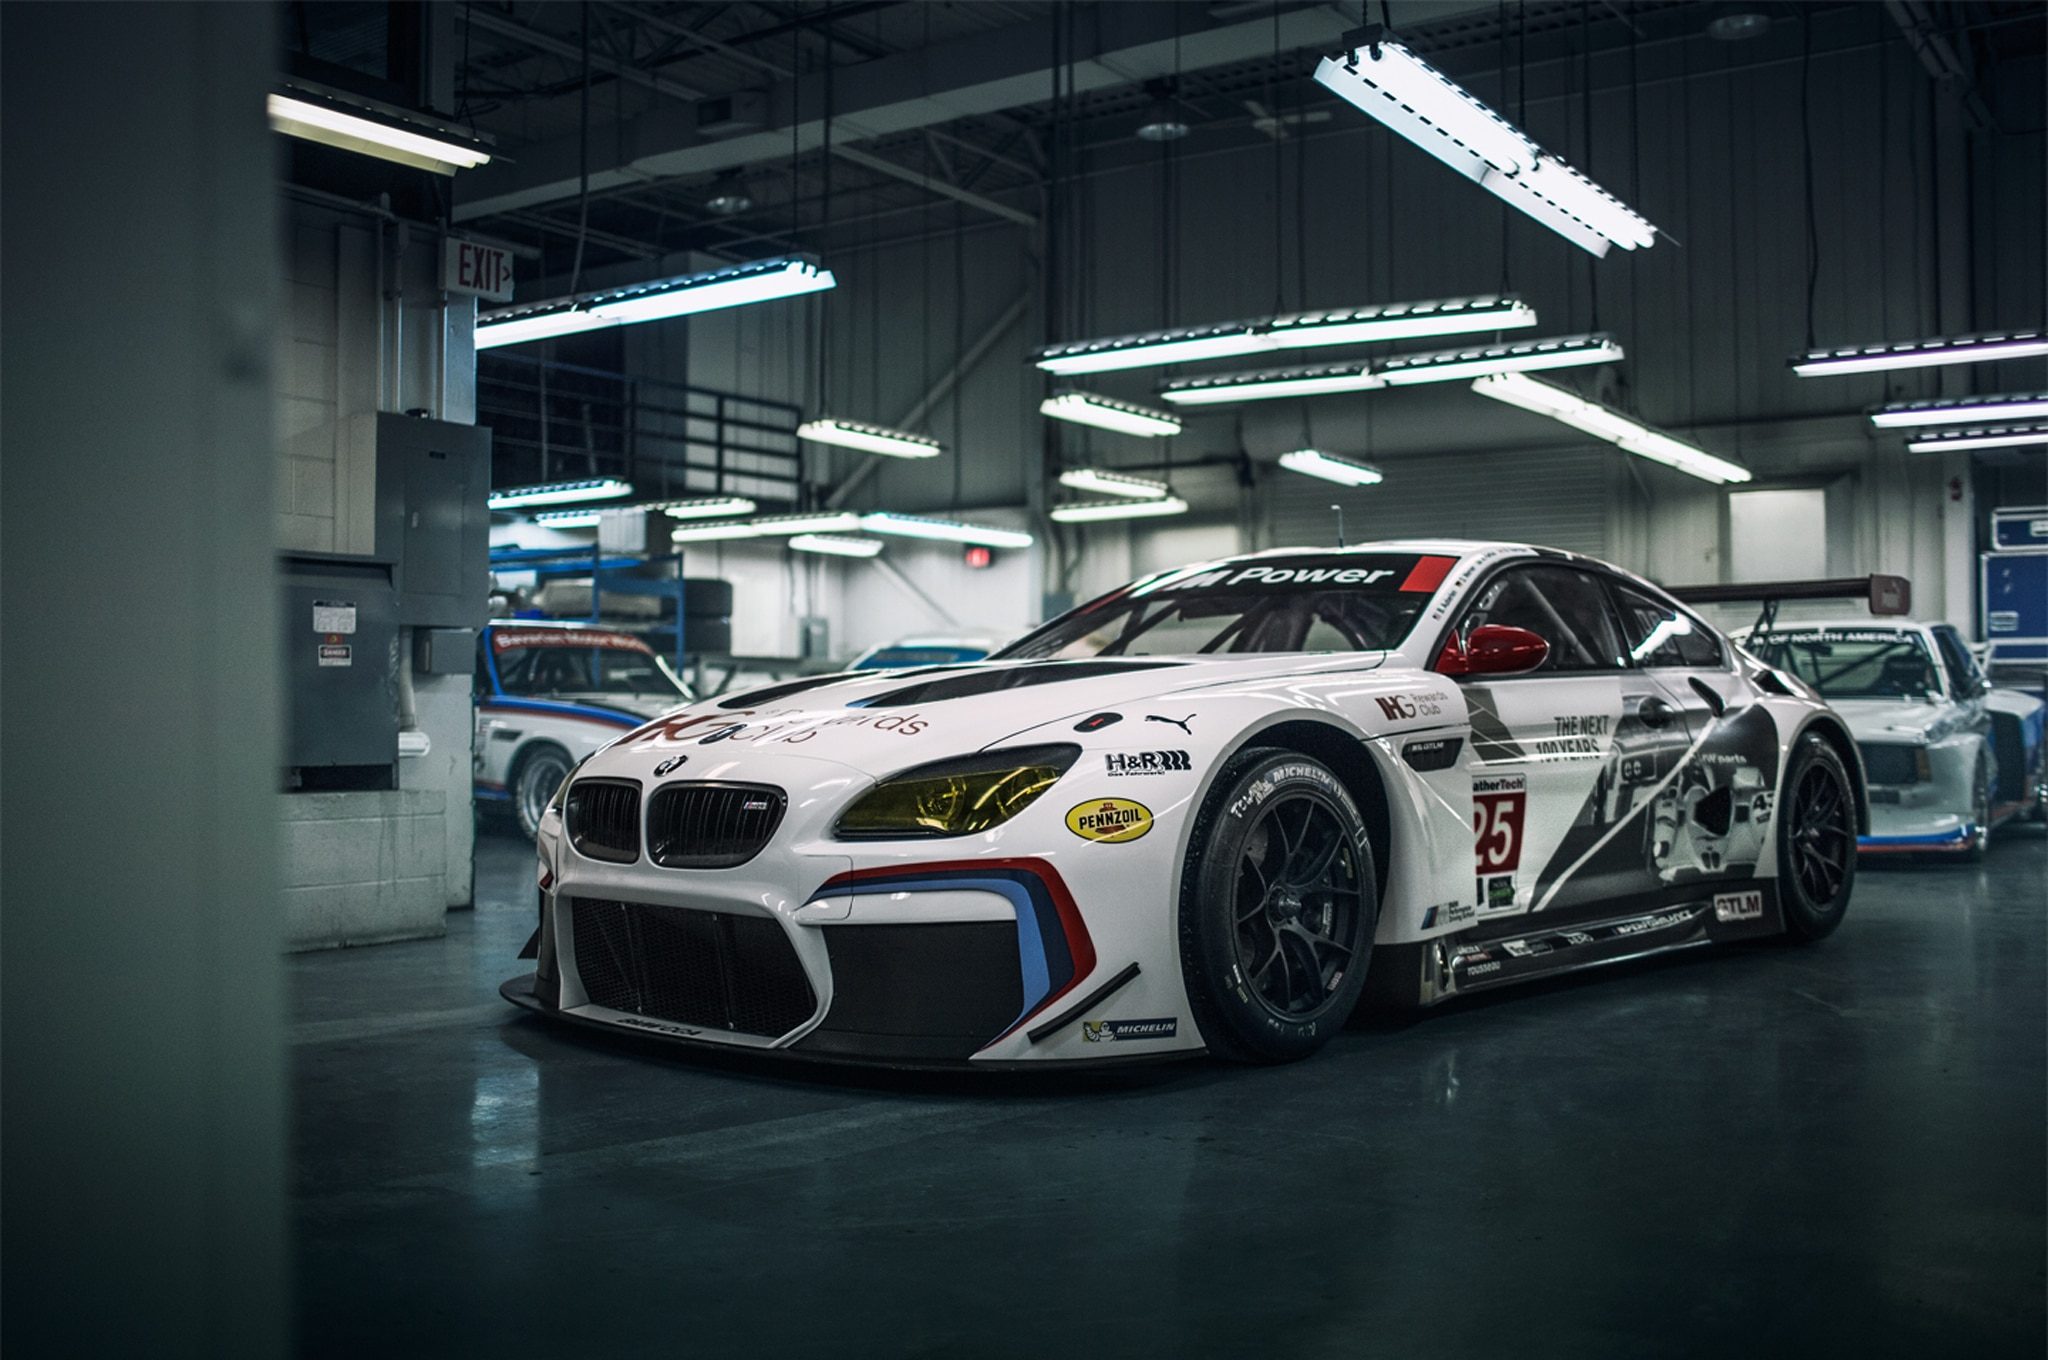 bmw to return to le mans in 2018 with lmgte class effort automobile magazine. Black Bedroom Furniture Sets. Home Design Ideas